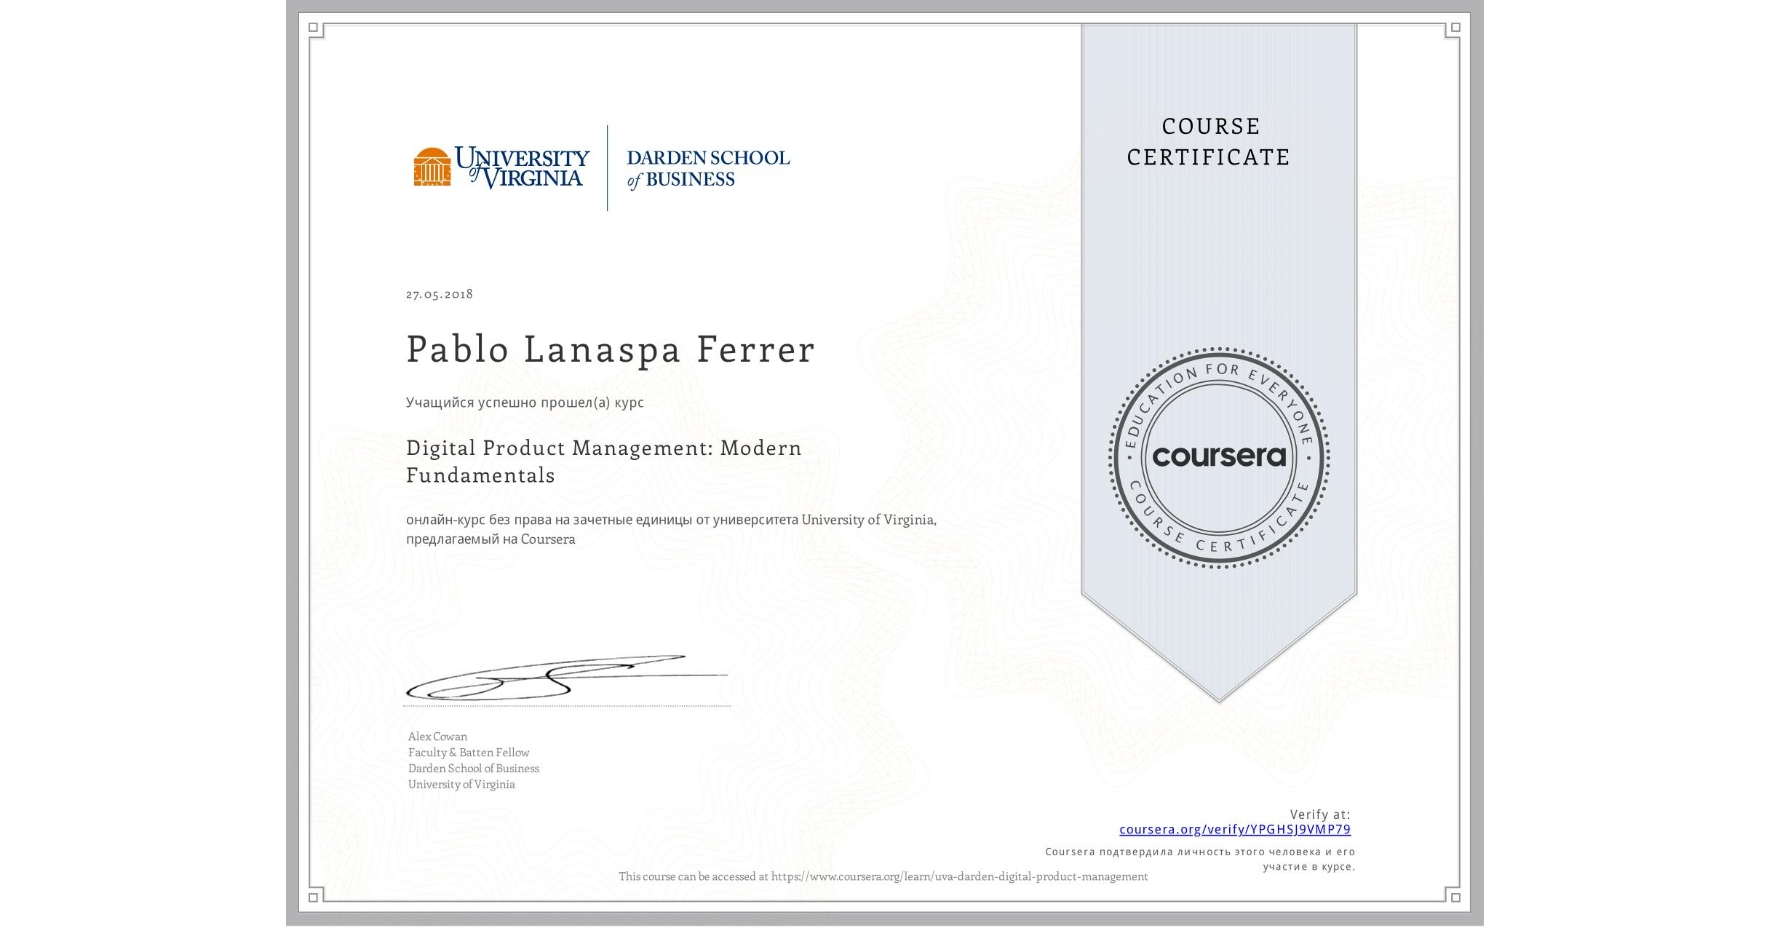 View certificate for Pablo Lanaspa Ferrer, Digital Product Management: Modern Fundamentals, an online non-credit course authorized by University of Virginia and offered through Coursera